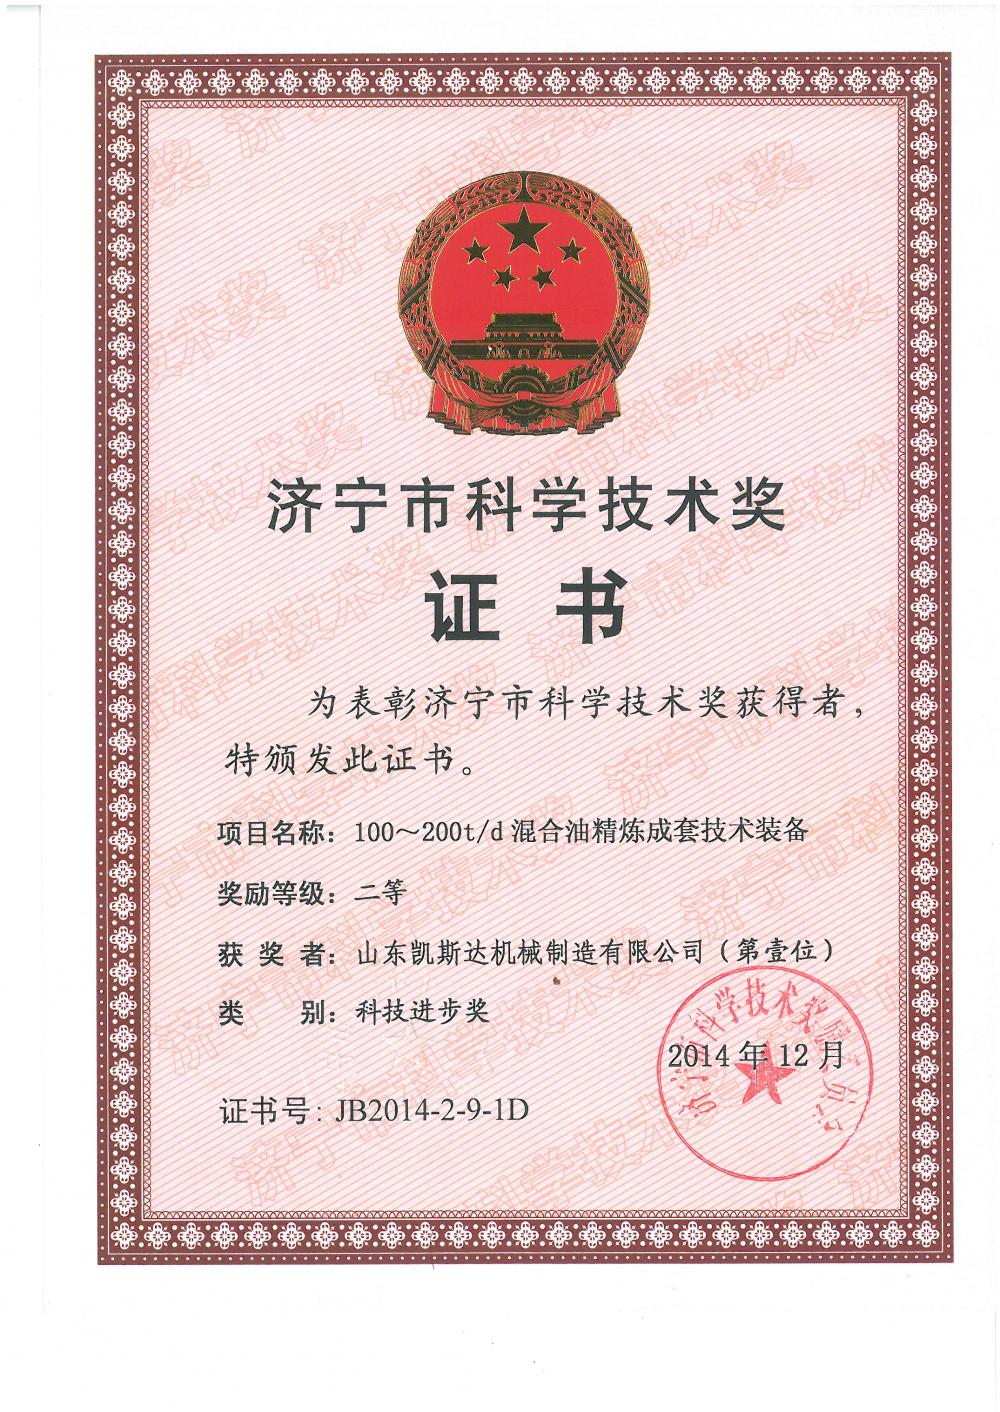 Honor Certificates of Miscella Refining Equipments